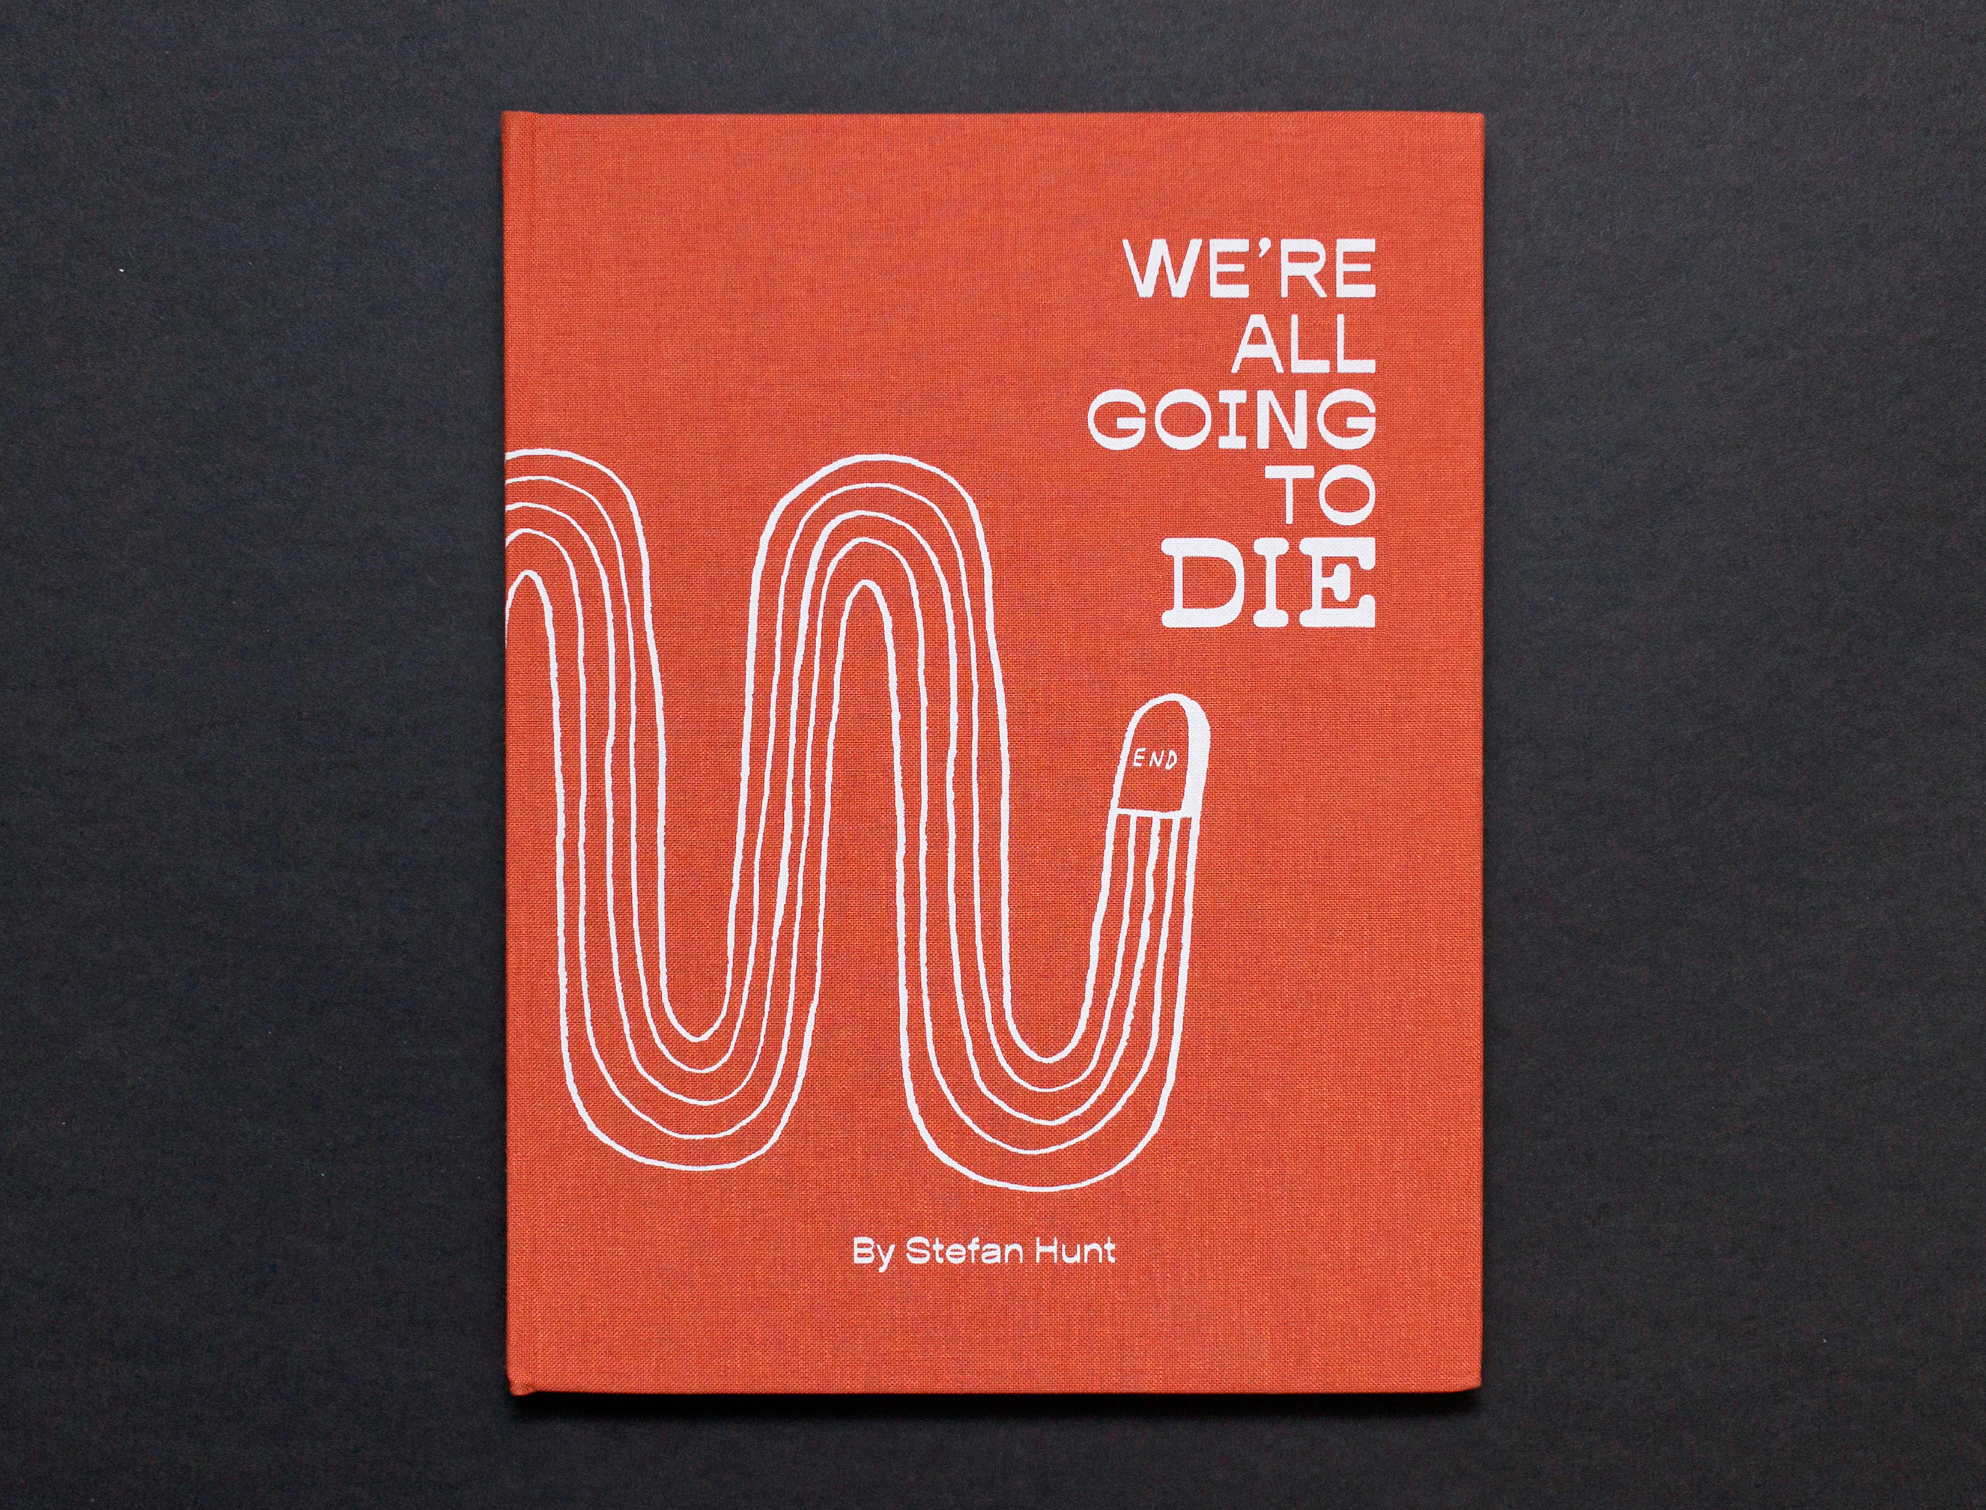 WE'RE ALL GOING TO DIE - THE BOOK